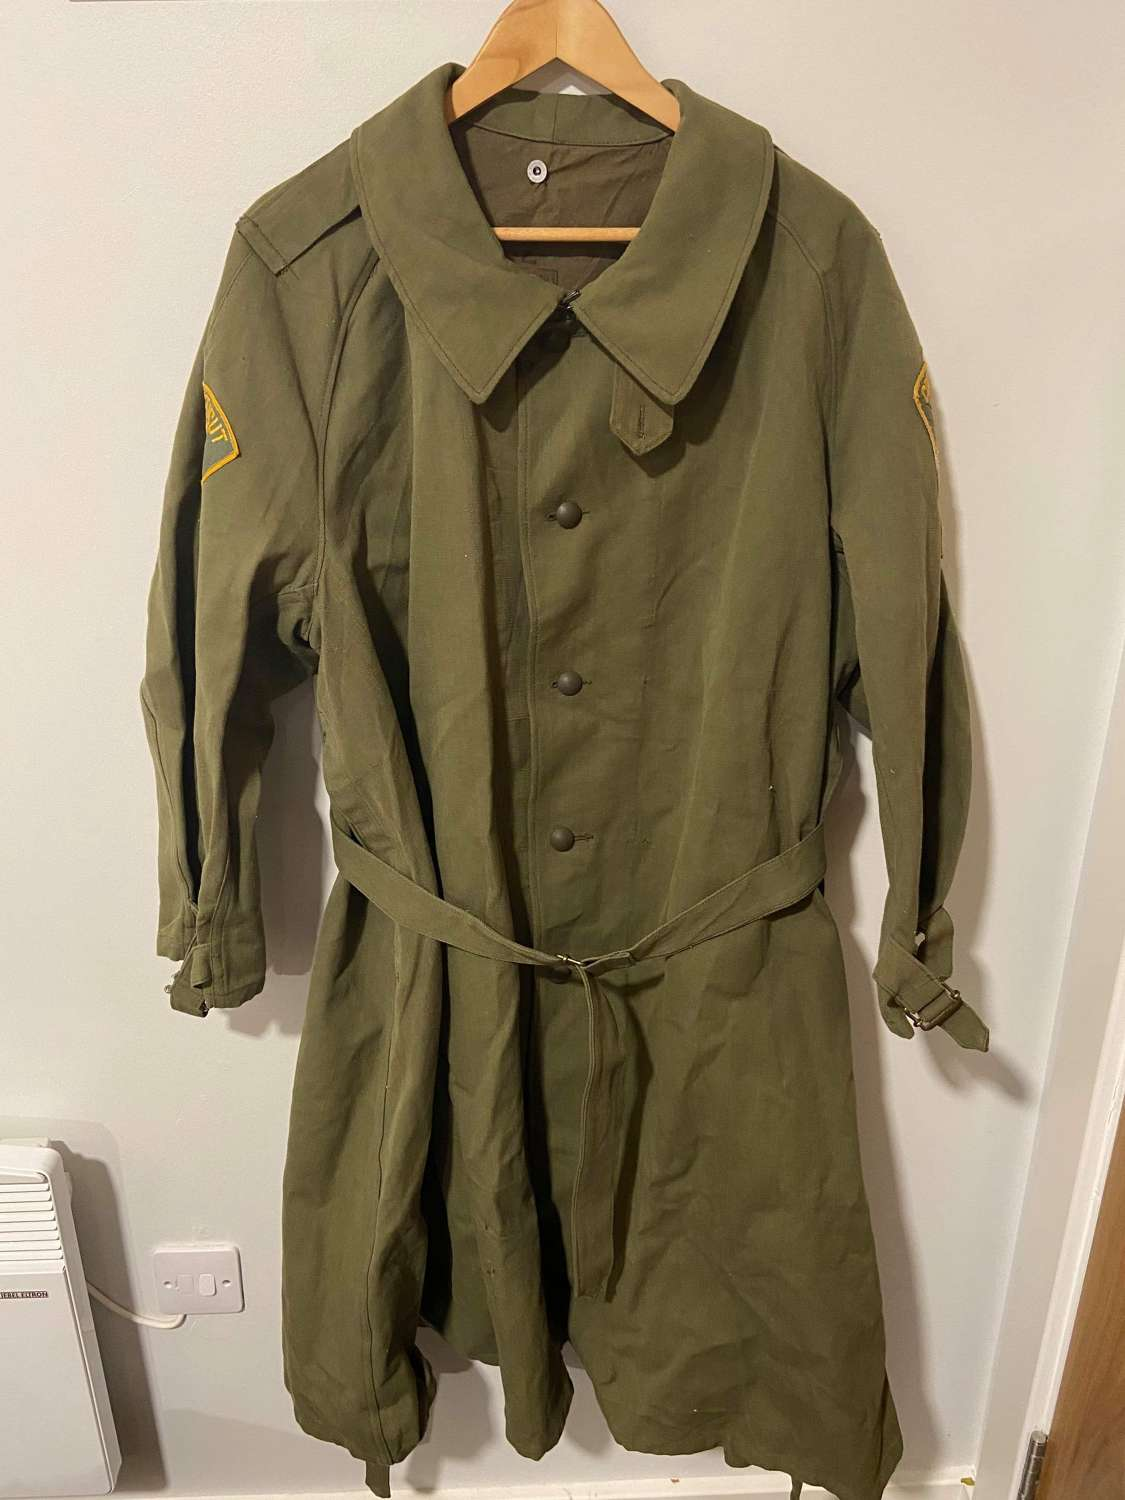 WW2 French Army Overcoat Converted Connecticut State Jail Overcoat